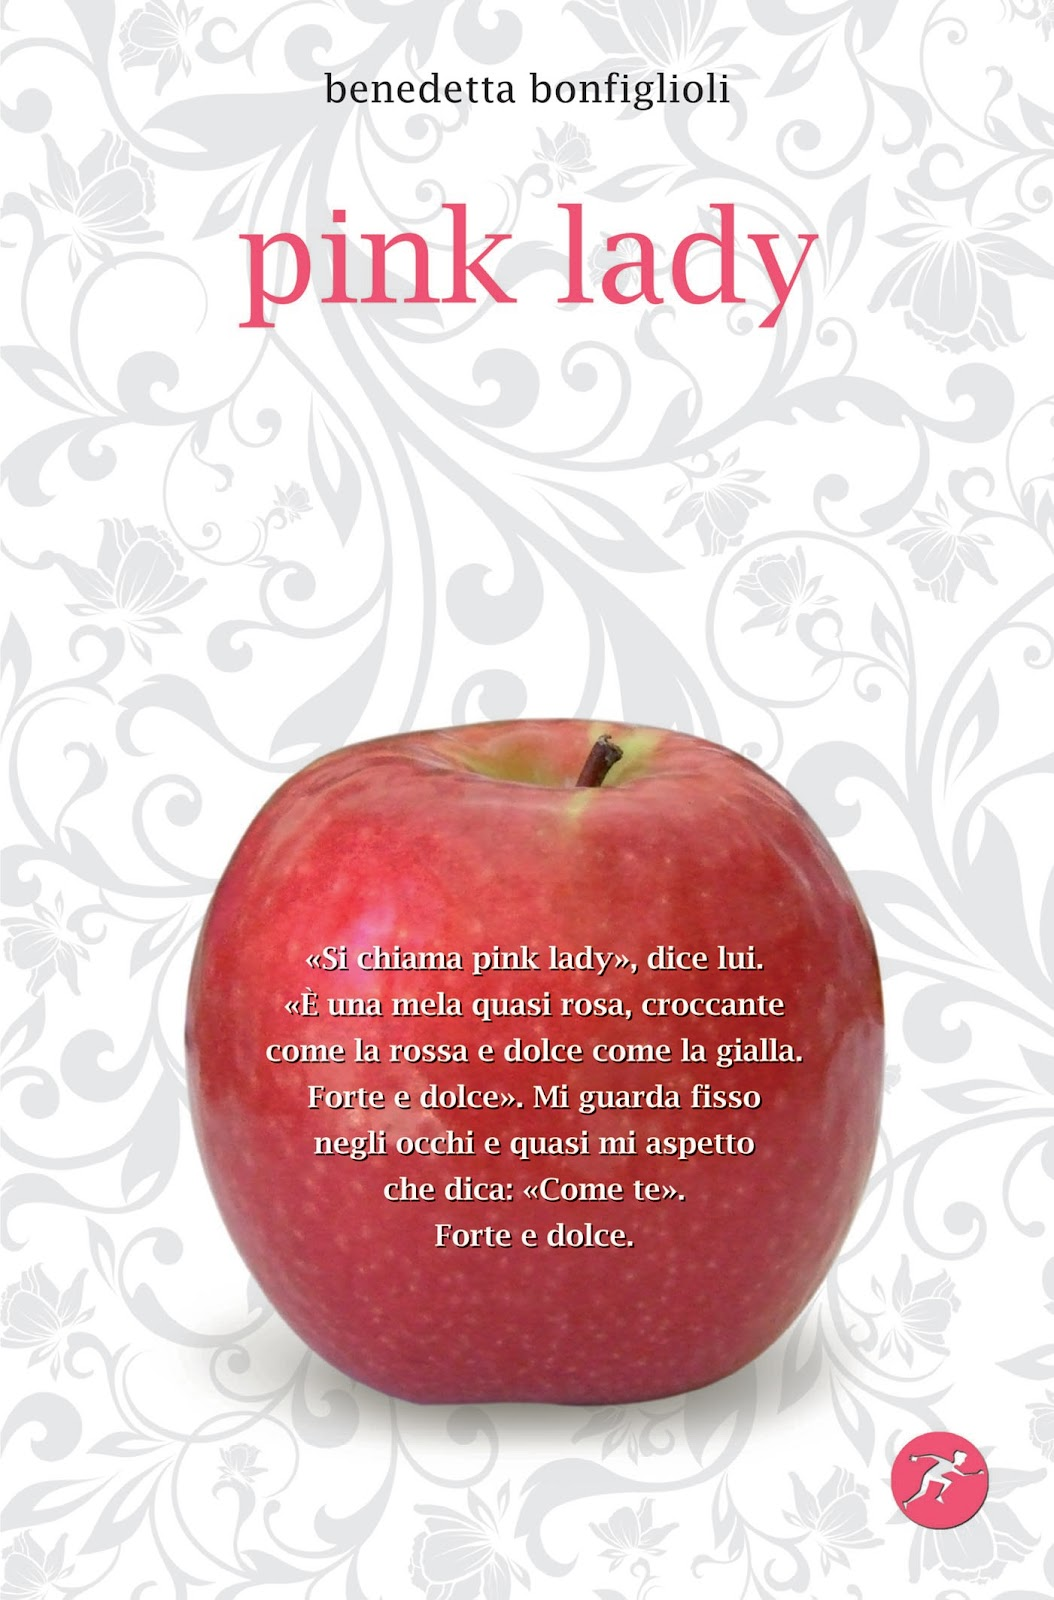 More about Pink lady